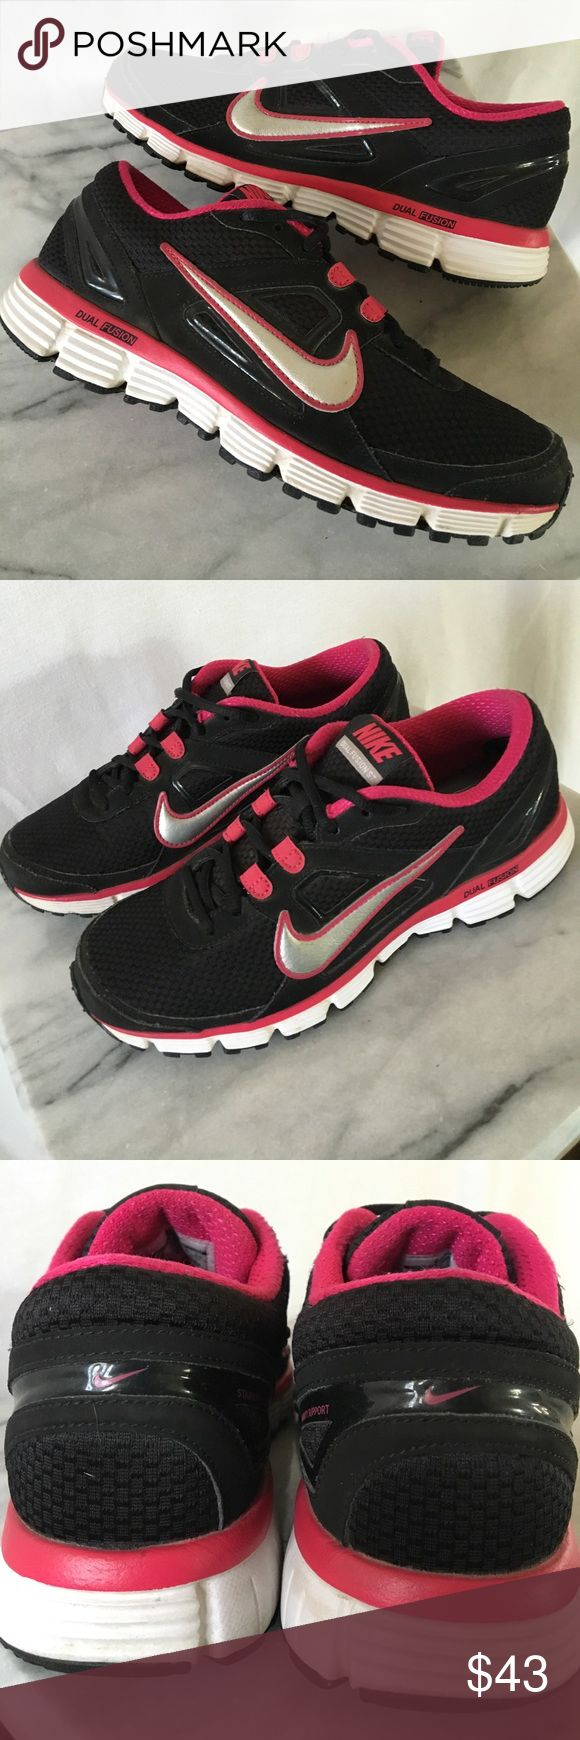 NIKE DUAL FUSION ST Excellent condition! Black/white/fuchsia. Thanks! 💋👣💋 Nike Shoes Athletic Shoes